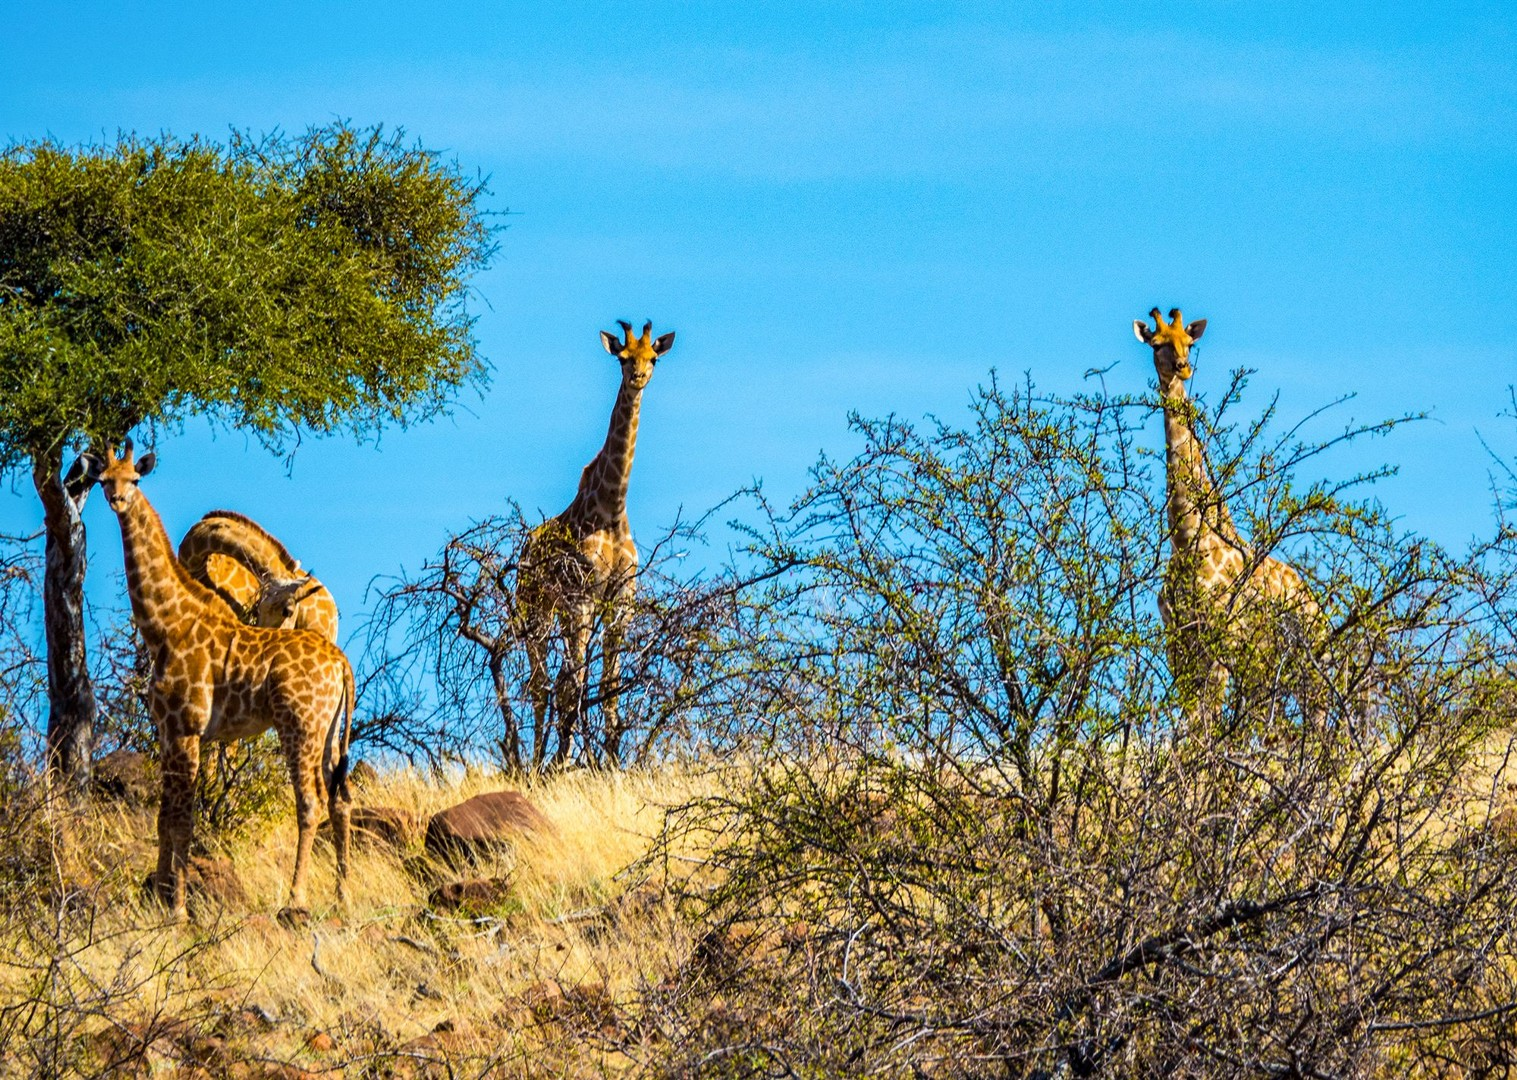 south-africa-mtb-botswana-giraffes-biking-holiday-land-of-the-giants-trip.jpg - NEW! South Africa and Botswana - Mountain Biking